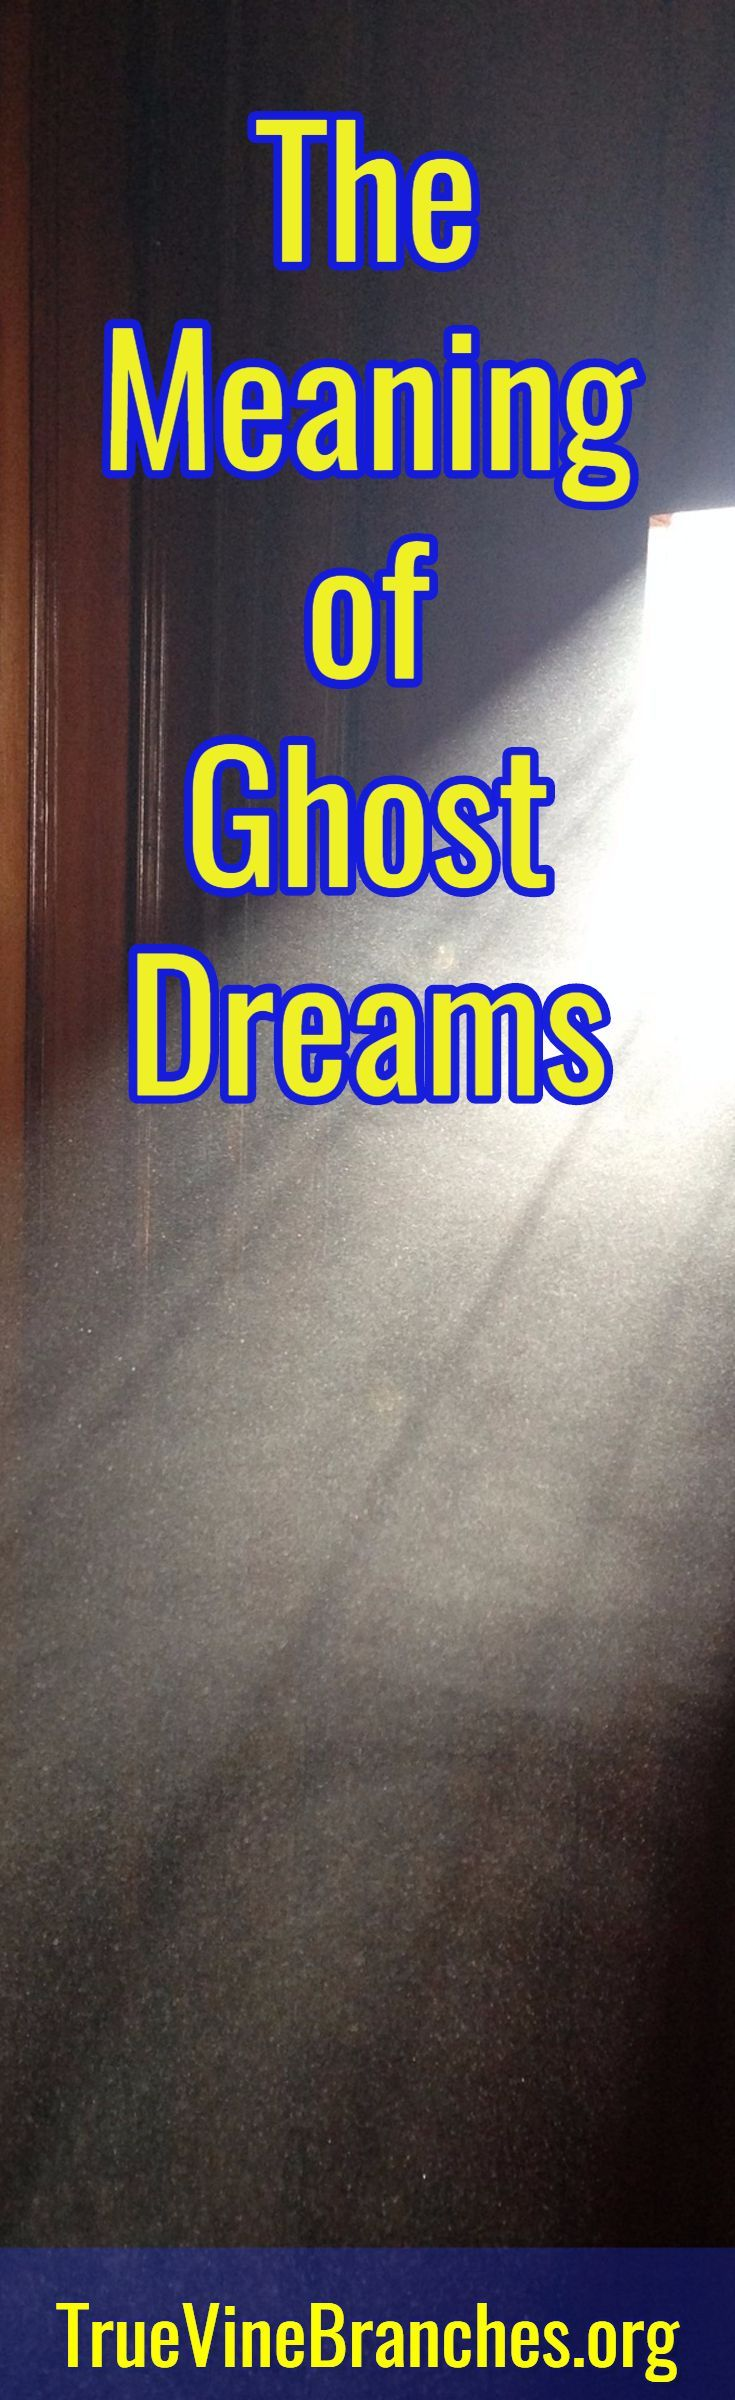 Learn the meaning of ghost dreams. Biblical dream interpretation, hearing God's voice, inspiration, encouragement.